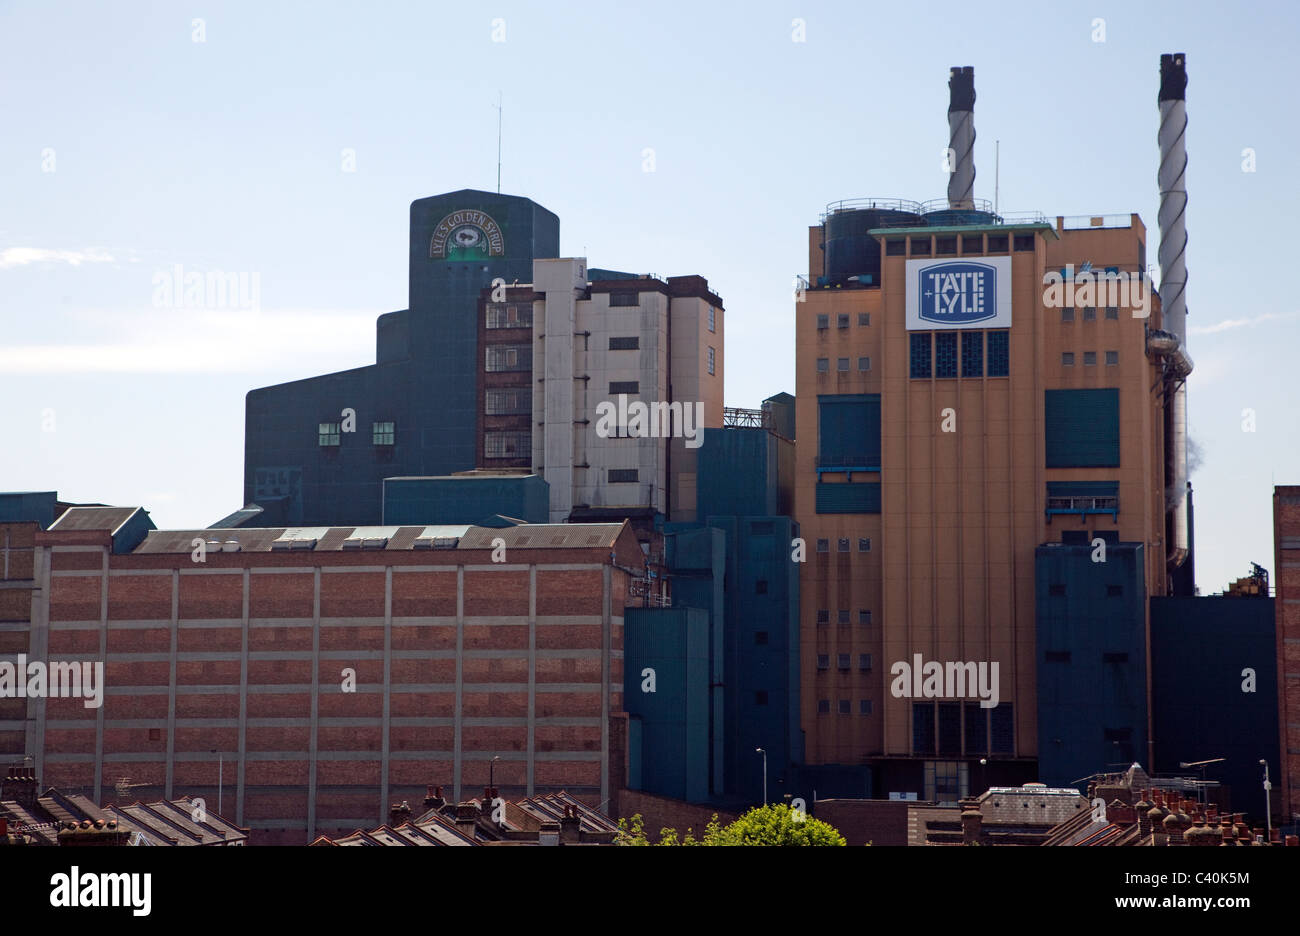 Tate & Lyle Thames Refinery, Docklands, London - Stock Image